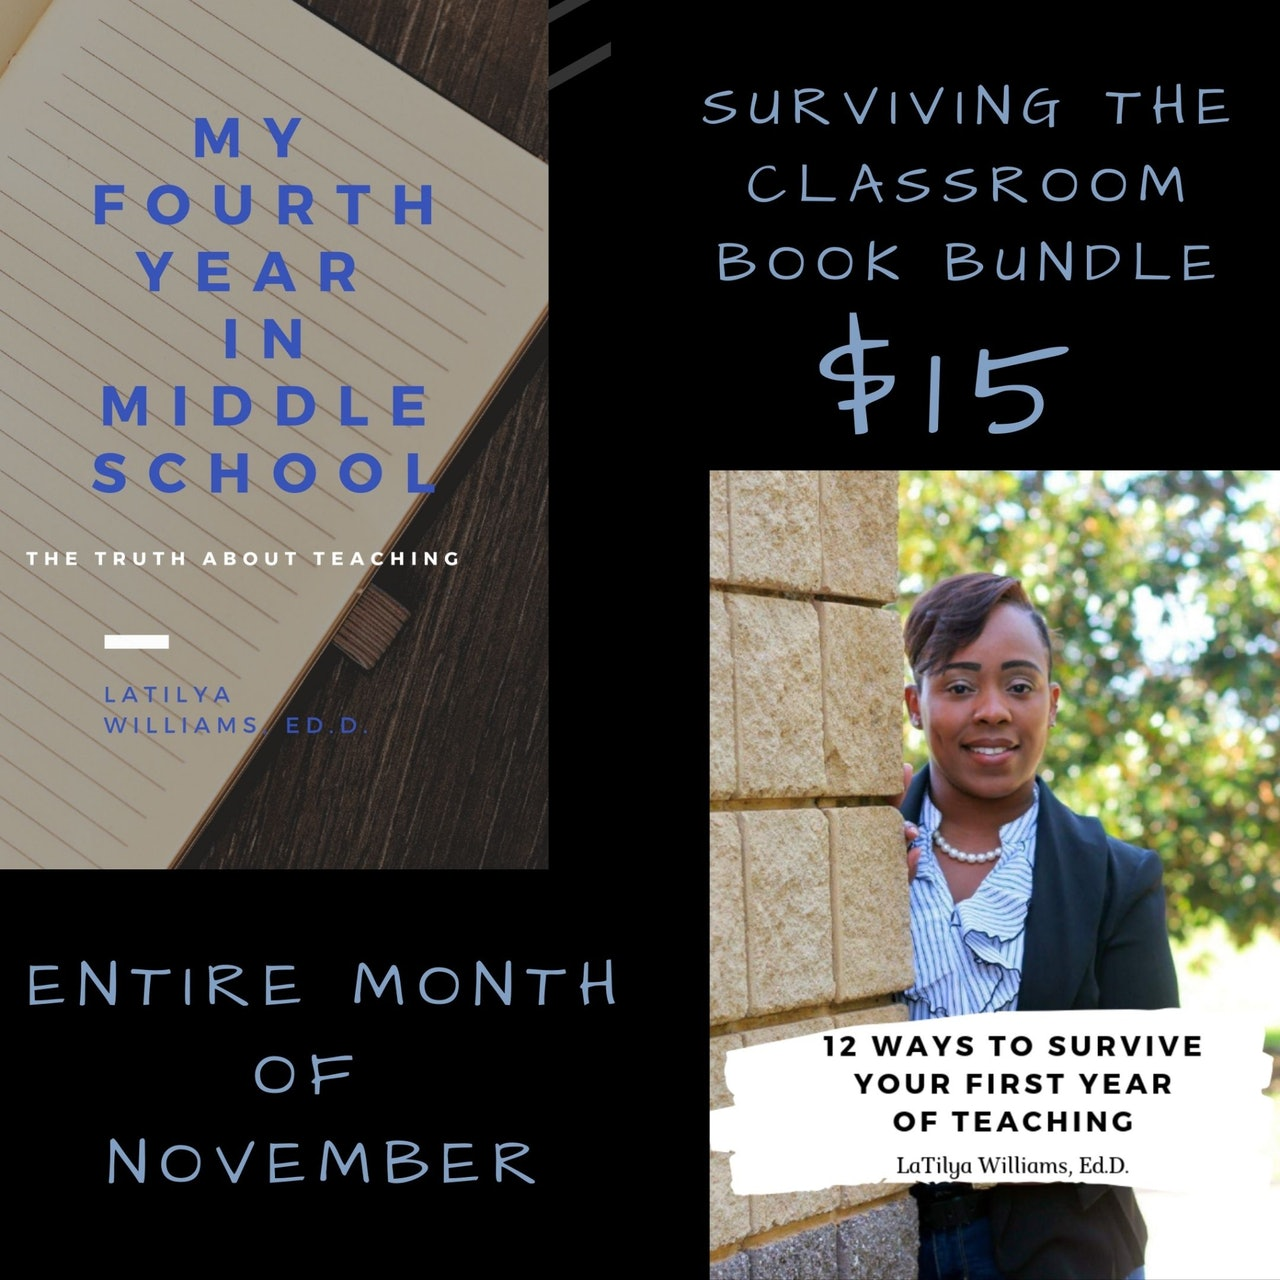 Survive the Classroom Book Bundle